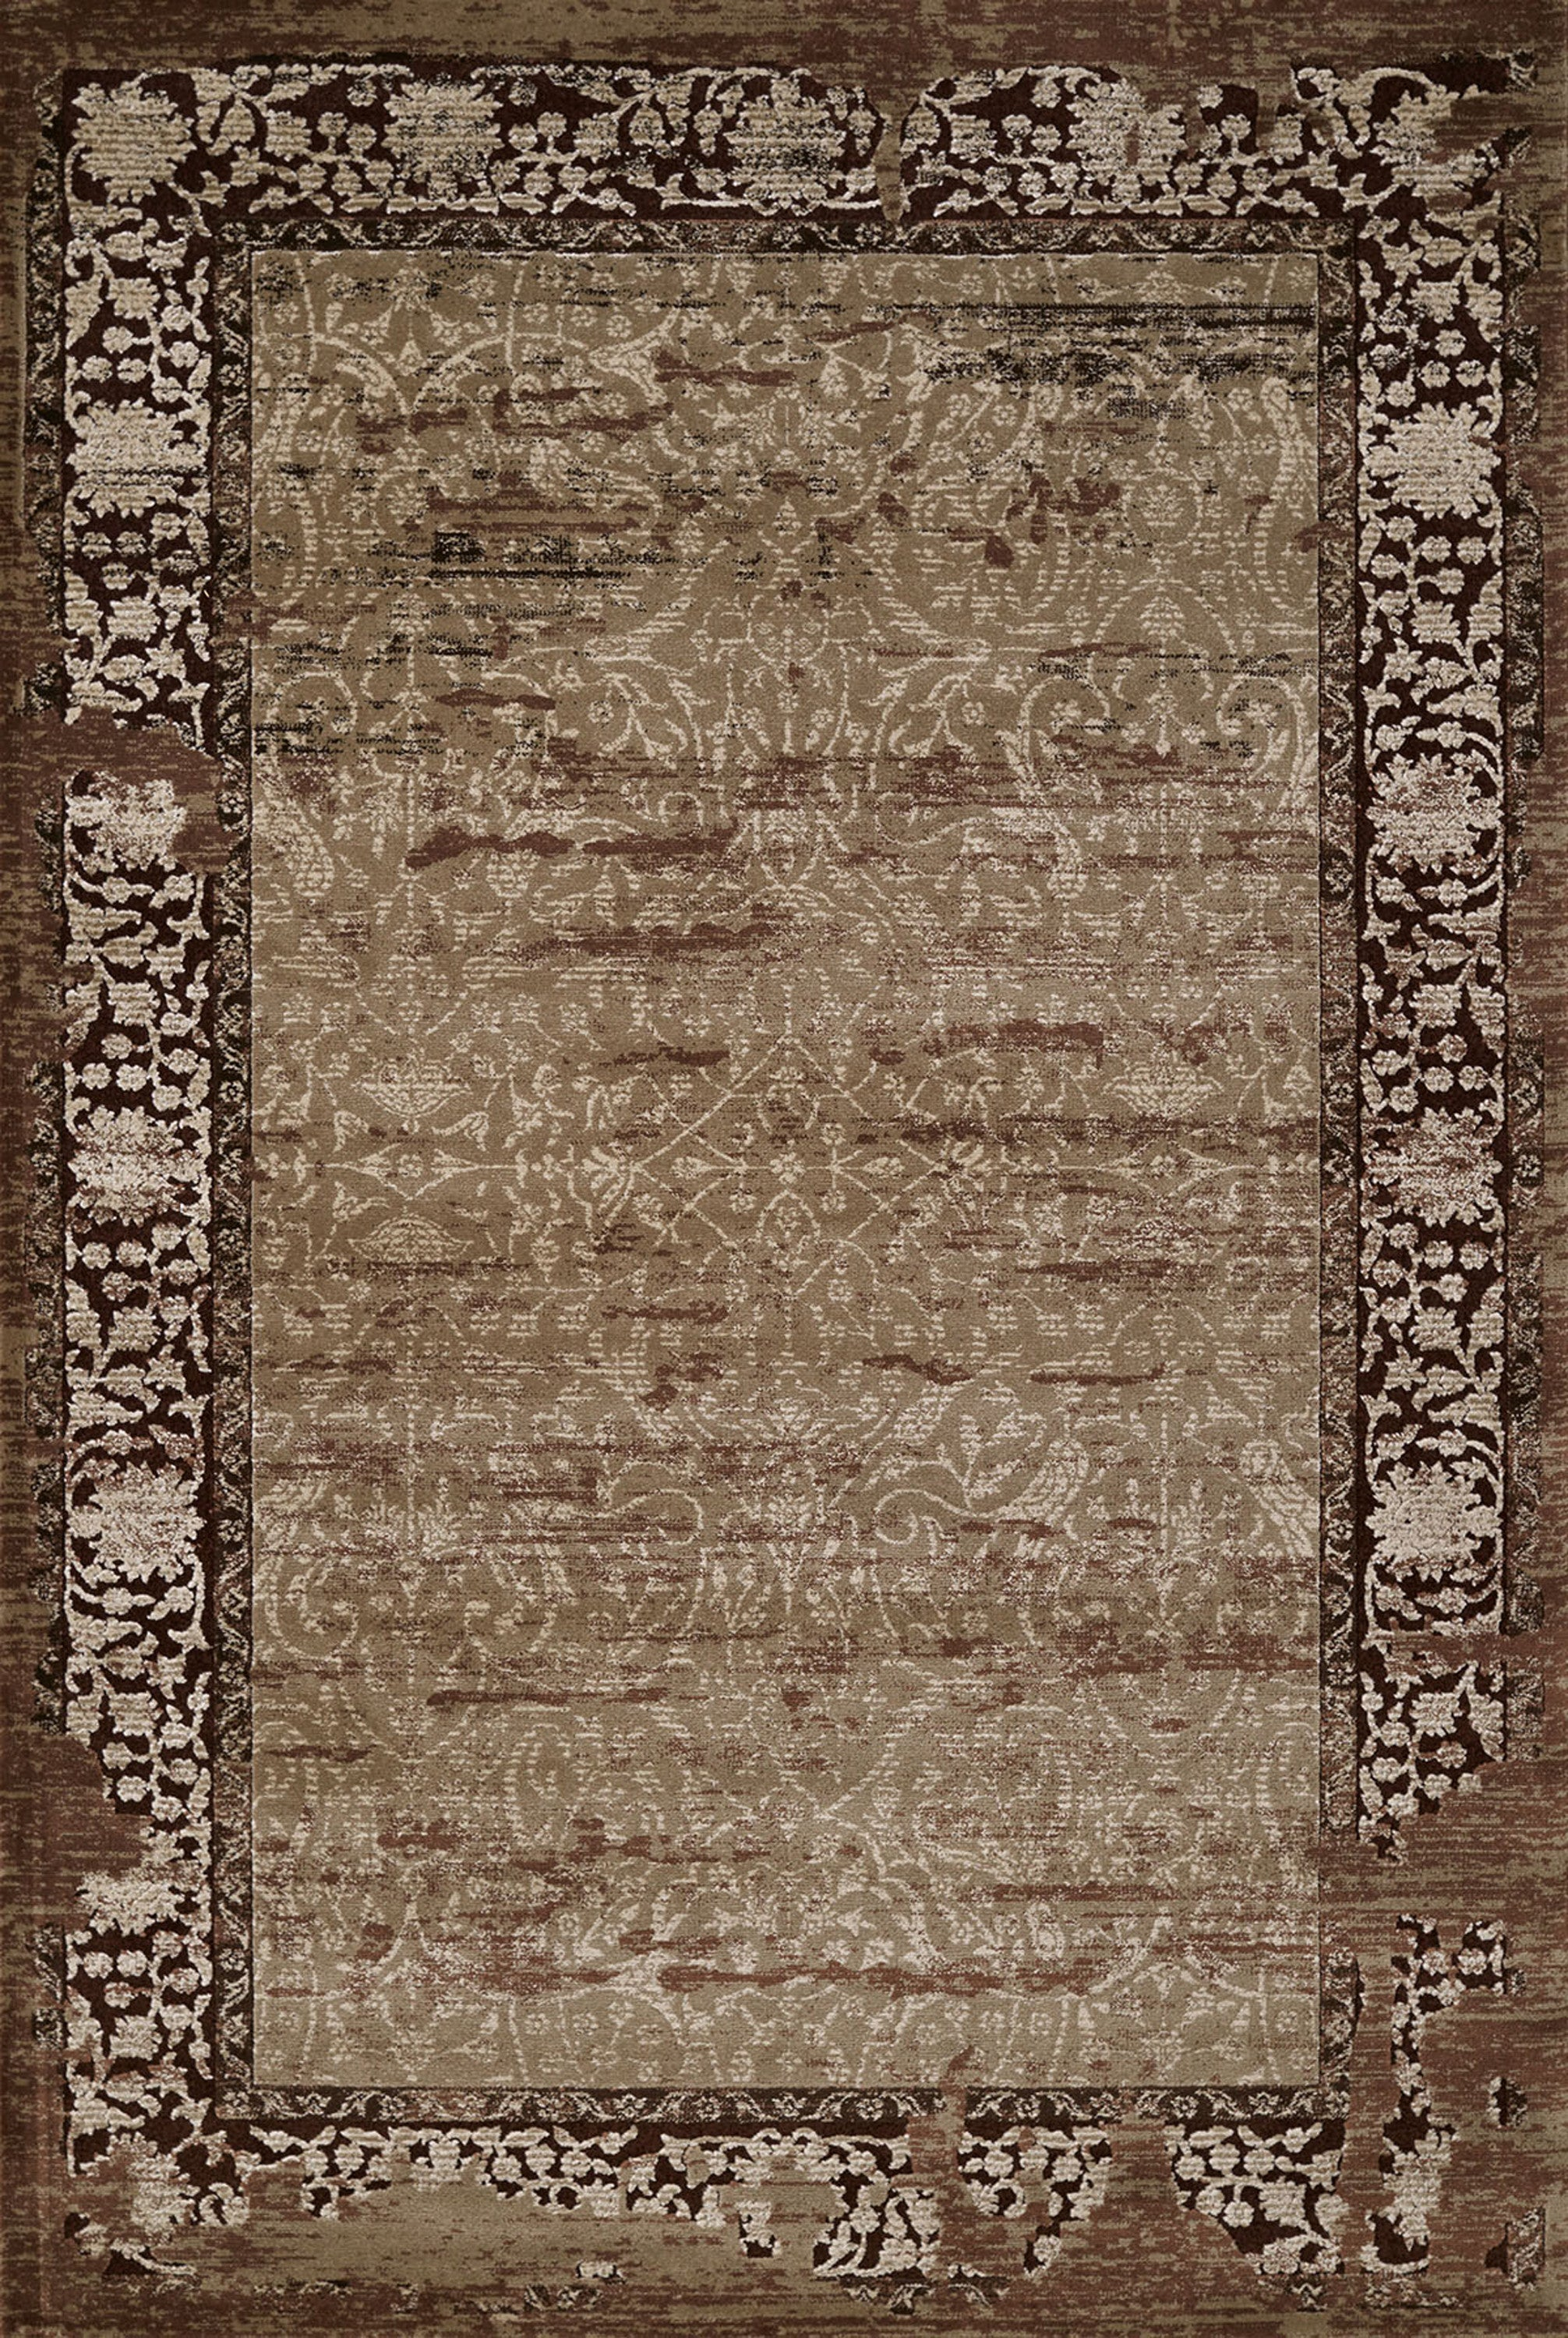 United Weavers - Weathered Treasure Rug Collection -RELIC LIGHT BROWN (1800-40252)